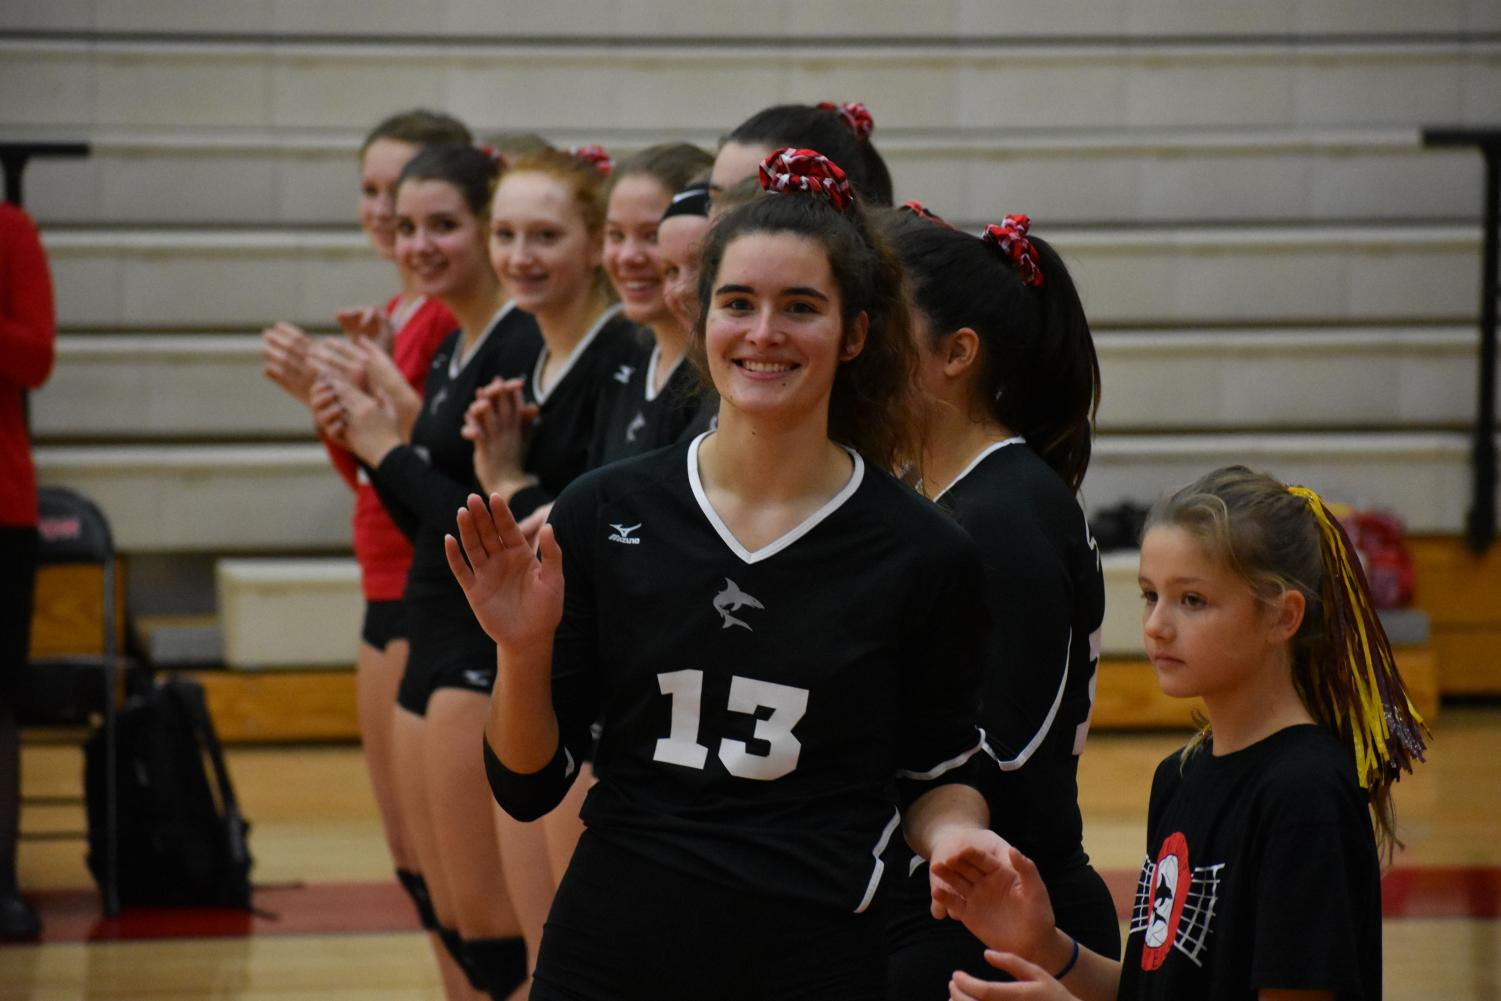 Senior Tara Goodell waves at the crowd before the championship match-up.